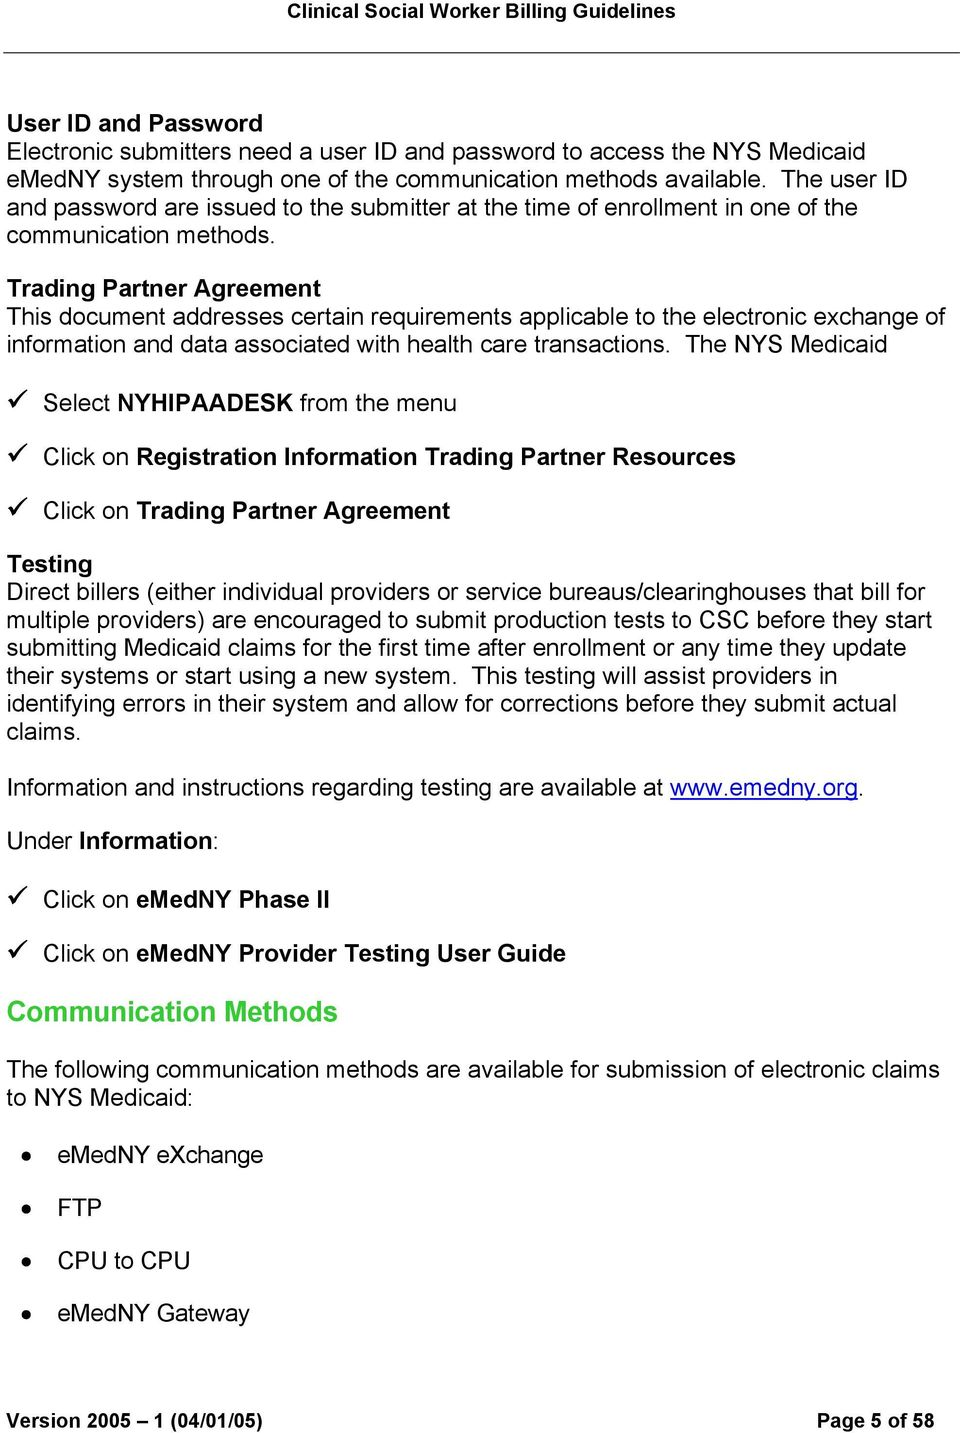 Trading Partner Agreement This document addresses certain requirements applicable to the electronic exchange of information and data associated with health care transactions.